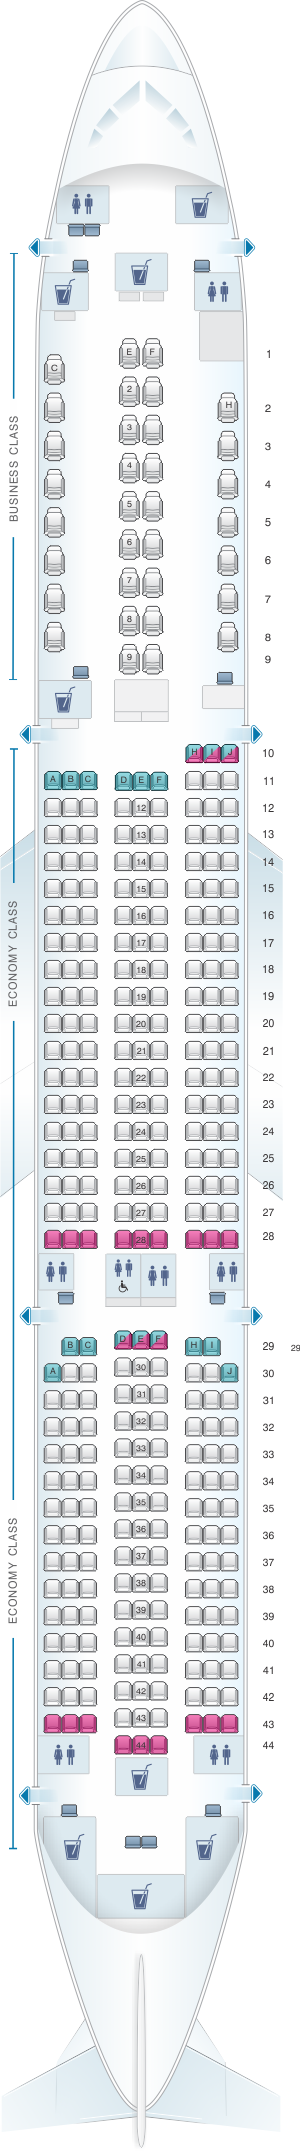 Seat map for Hainan Airlines Airbus A350 900 config.2